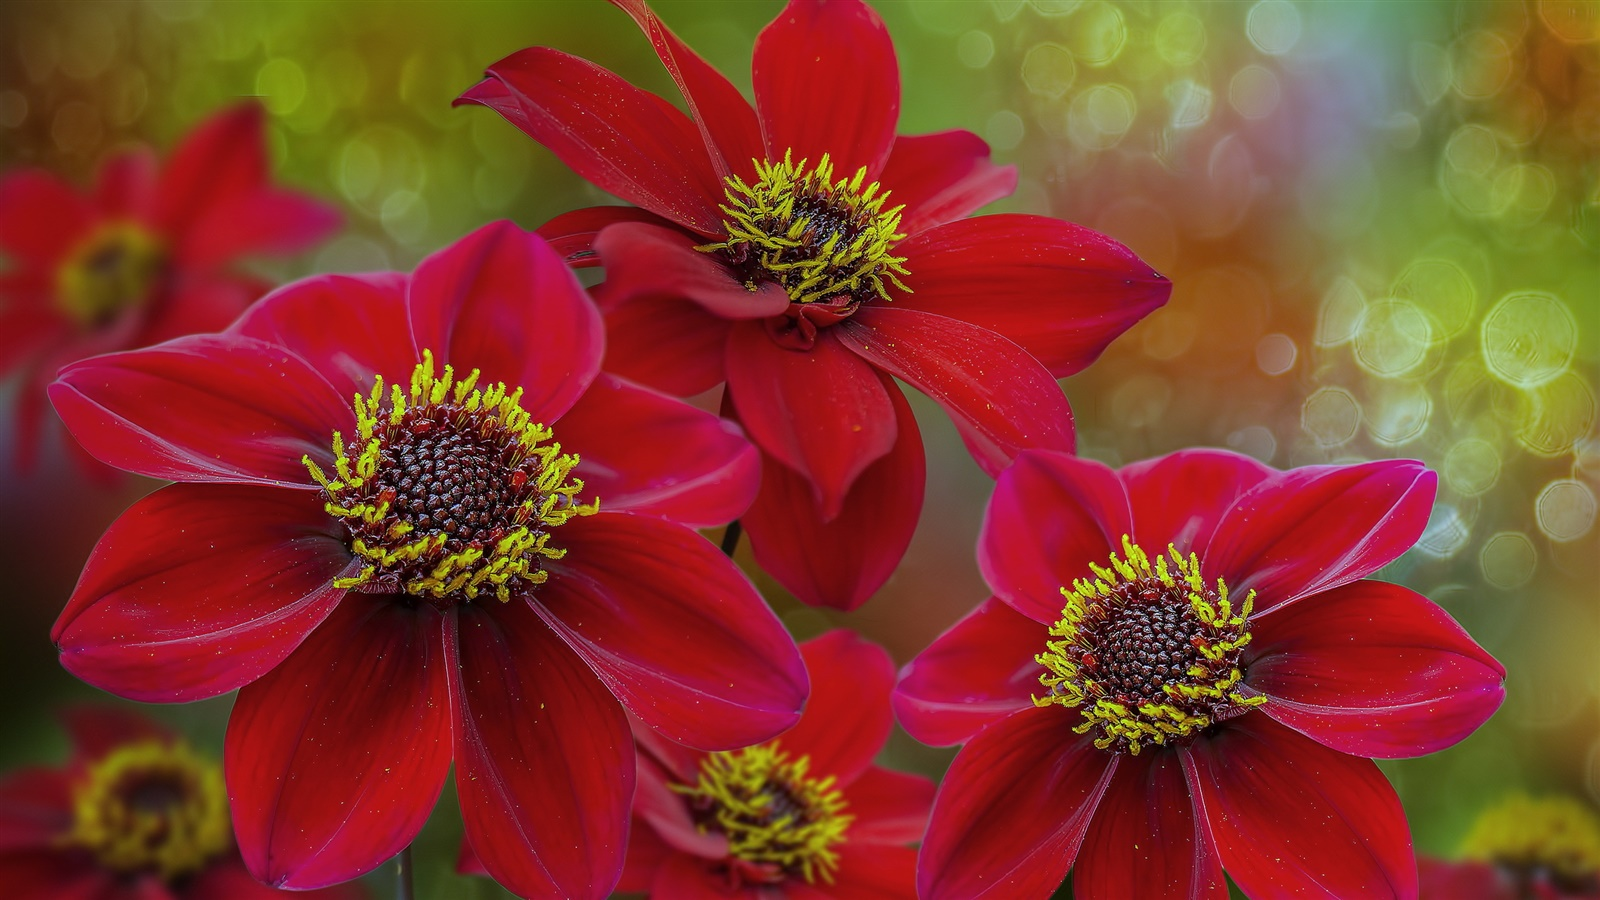 Red flowers macro photography, petals, pistil 1600x900 wallpaper